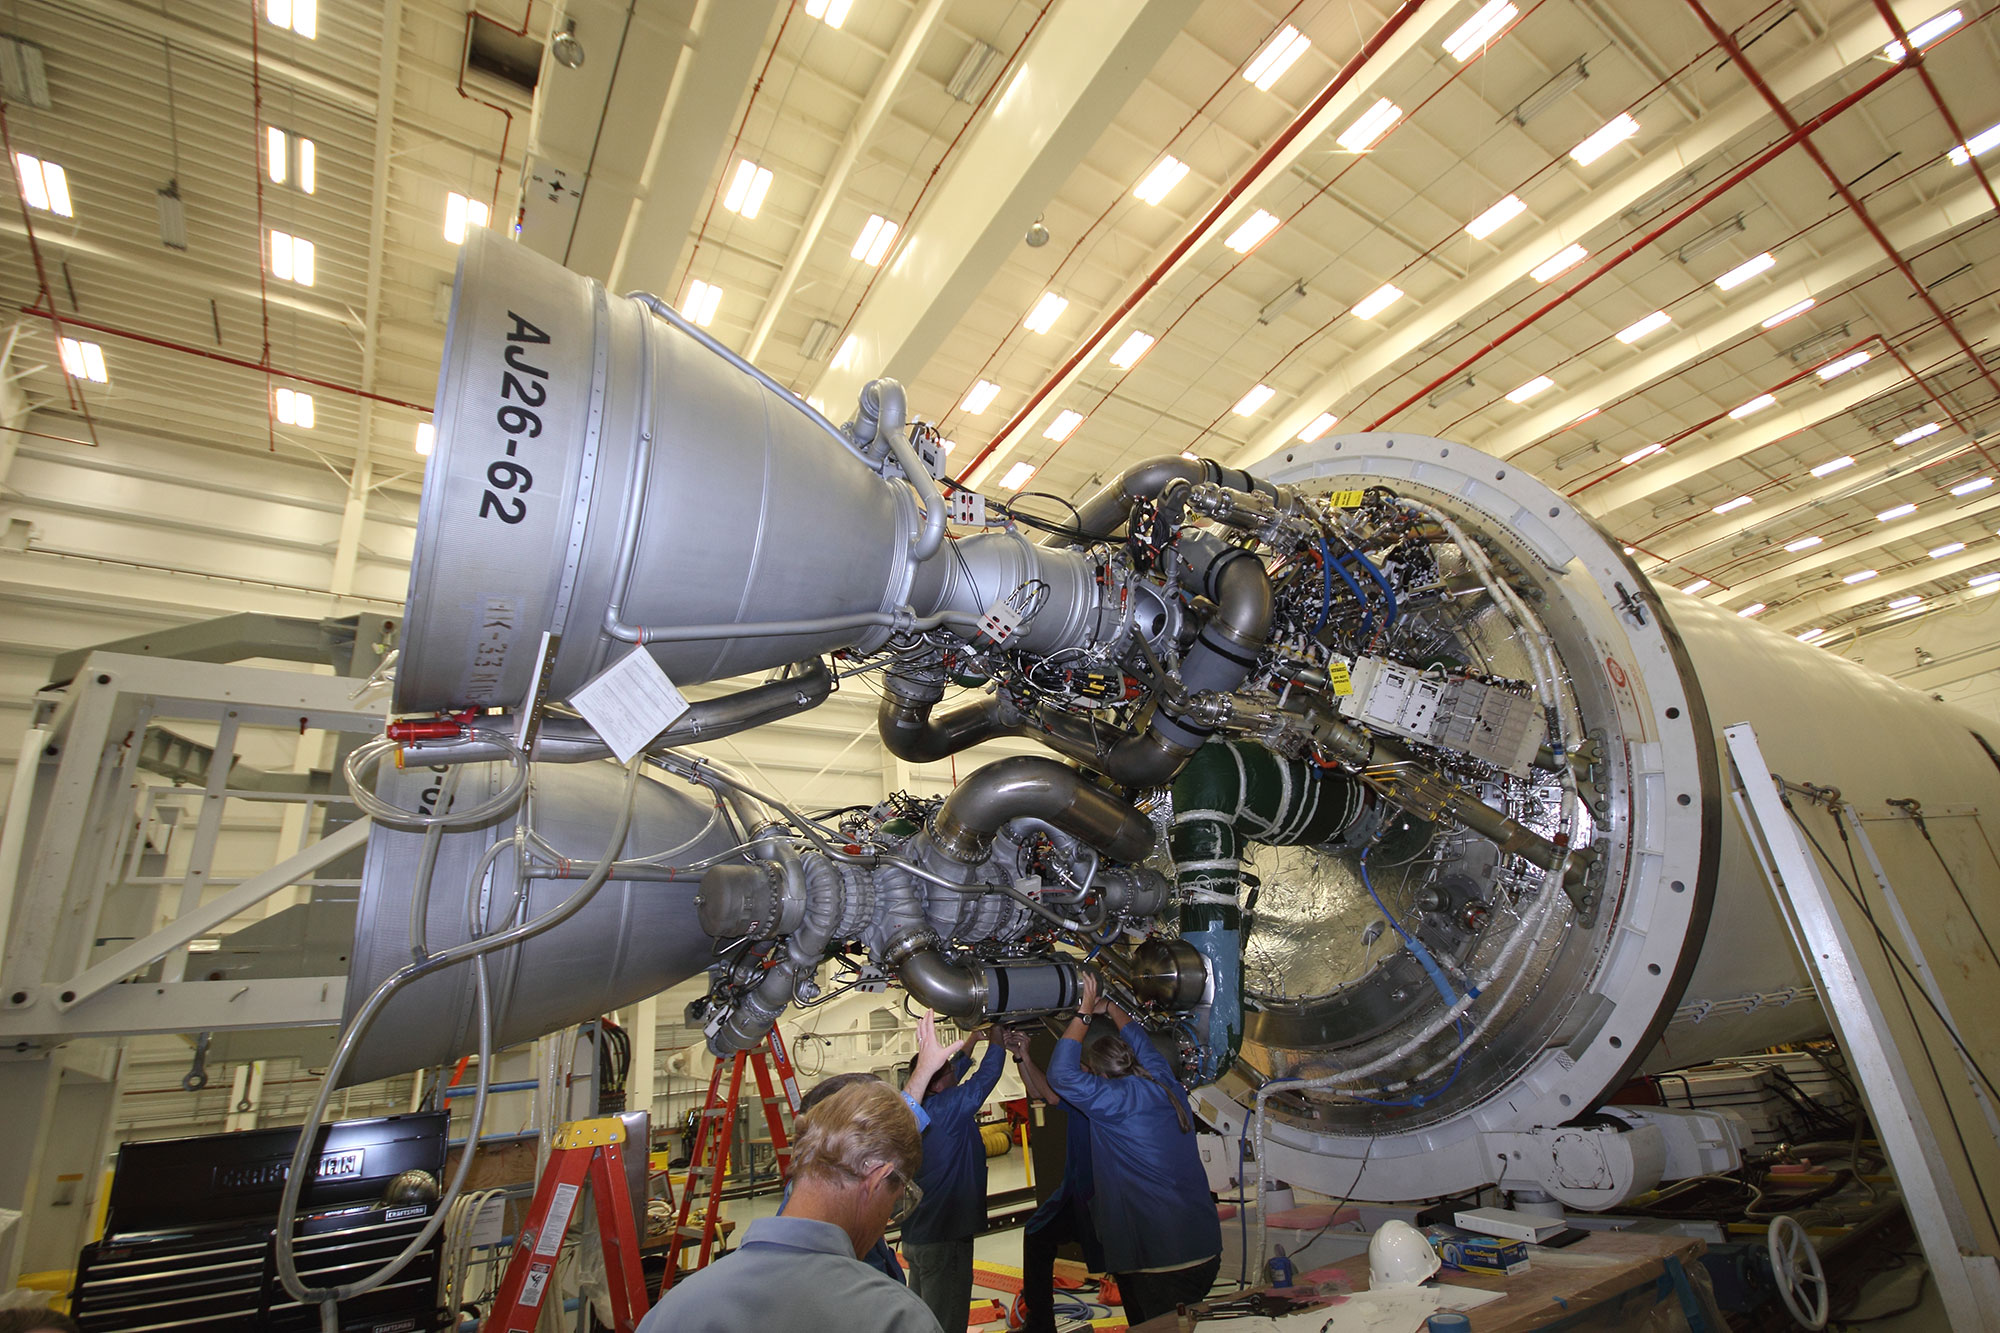 Orbital Sciences' technicians at work on two AJ26 first stage engines at the base of an Antares rocket at NASA Wallops. The refurbished, Soviet era NK-33 engines most likely caused the Antares rocket failure in late 2014. Credit: Ken Kremer